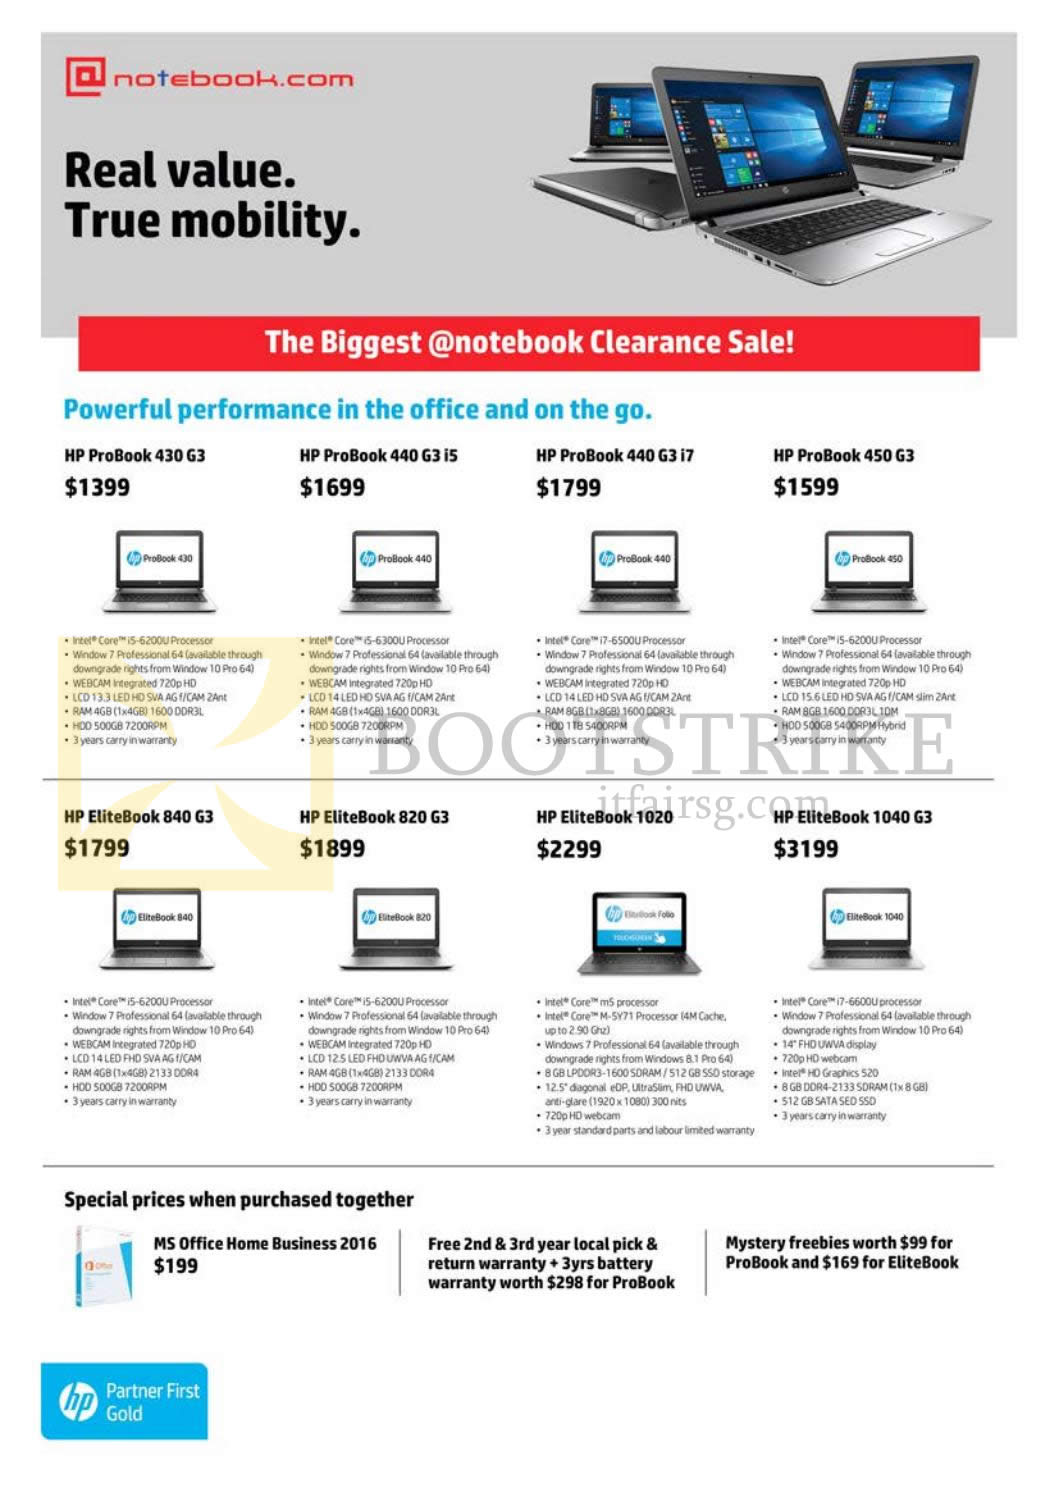 COMEX 2016 price list image brochure of Newstead Notebook.com HP Notebooks, Software, ProBook 430 G3, 440 G3, 450 G3, 840 G3, 820 G3, 1020, 1040 G3, MS Office Home Business 2016